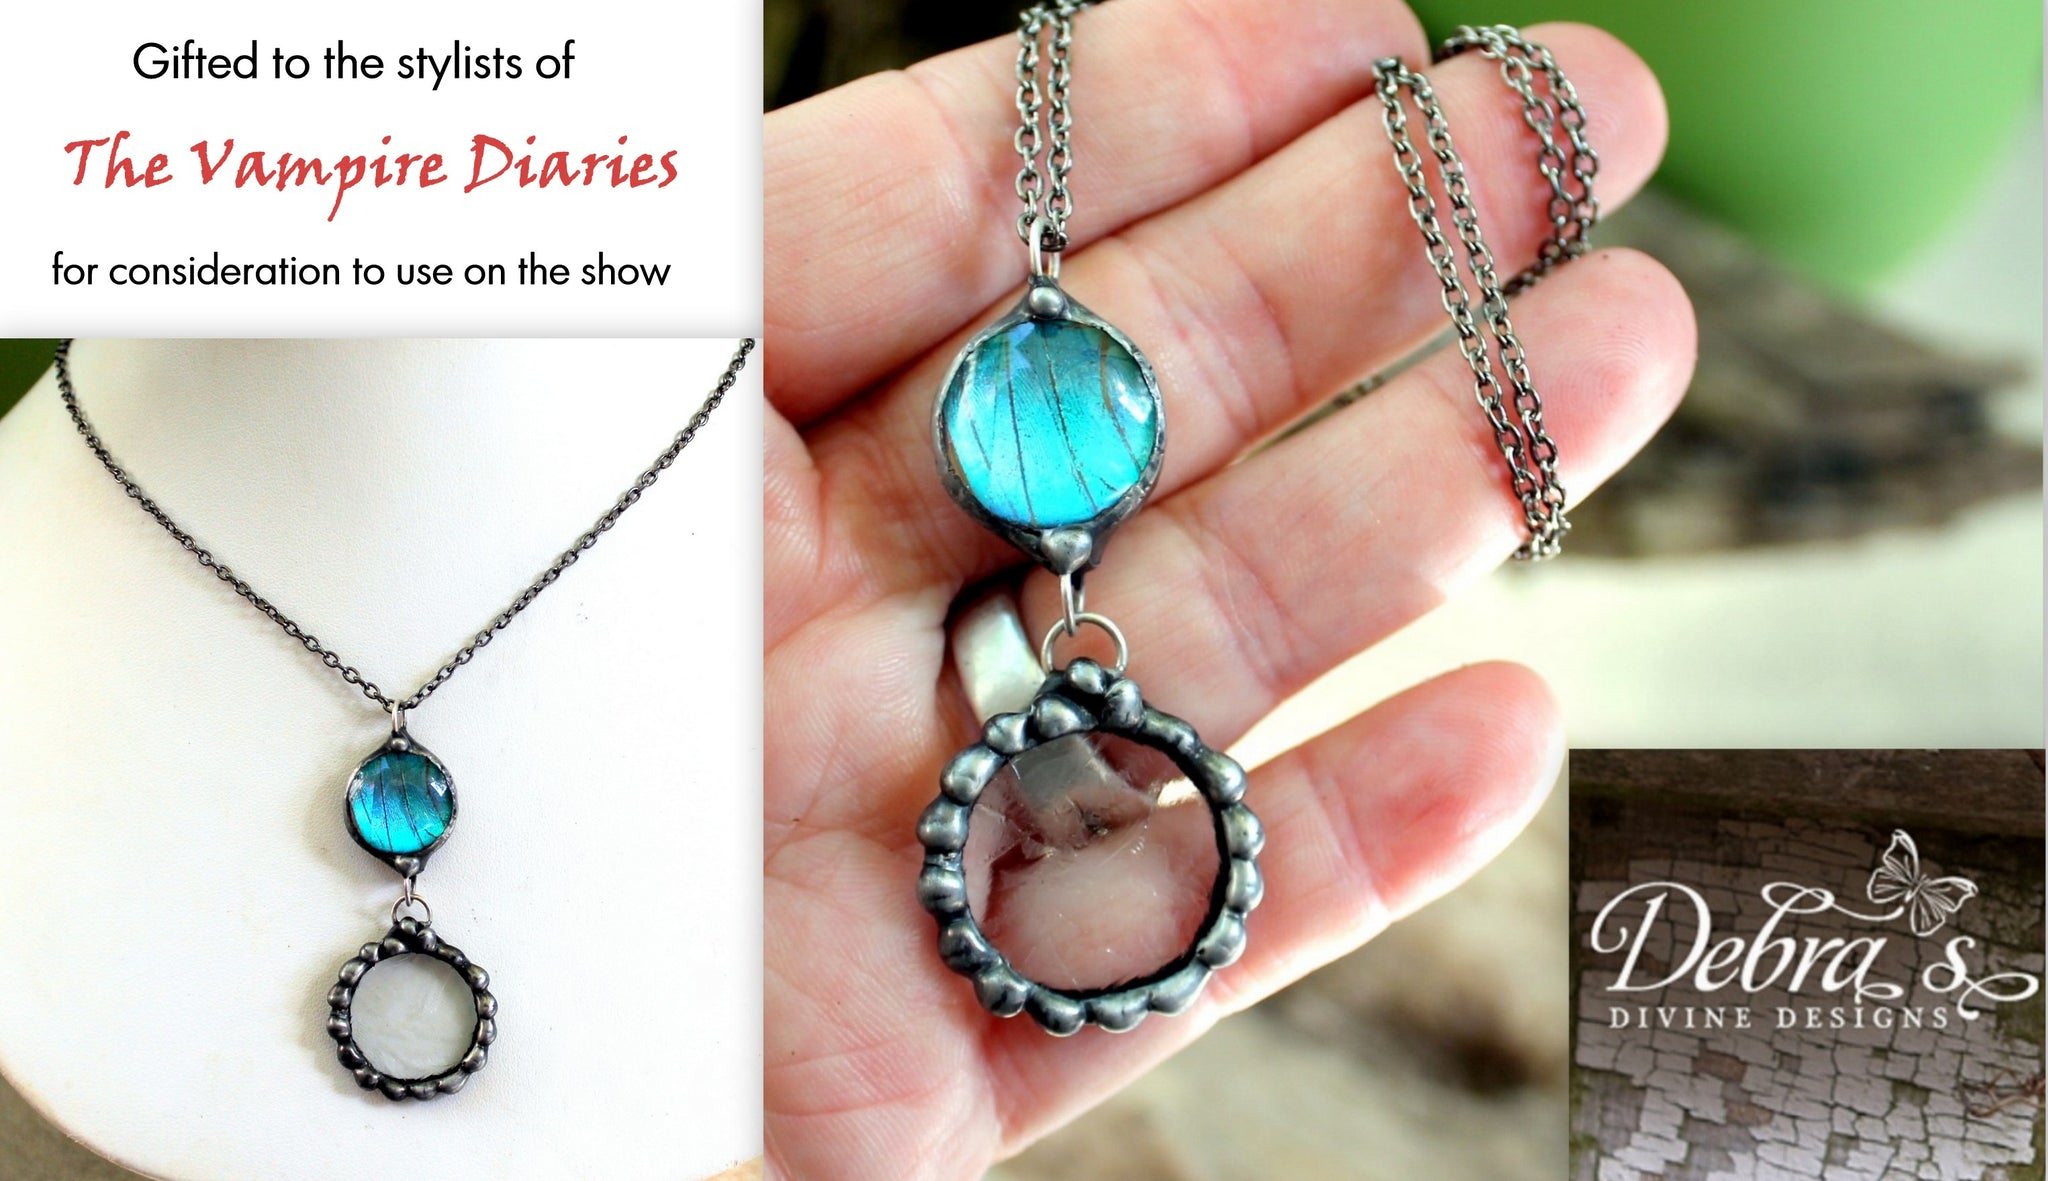 The Vampire Diaries Submission, Gunmetal Blue Butterfly Wing Necklace with Antiqued Frosted Glass,